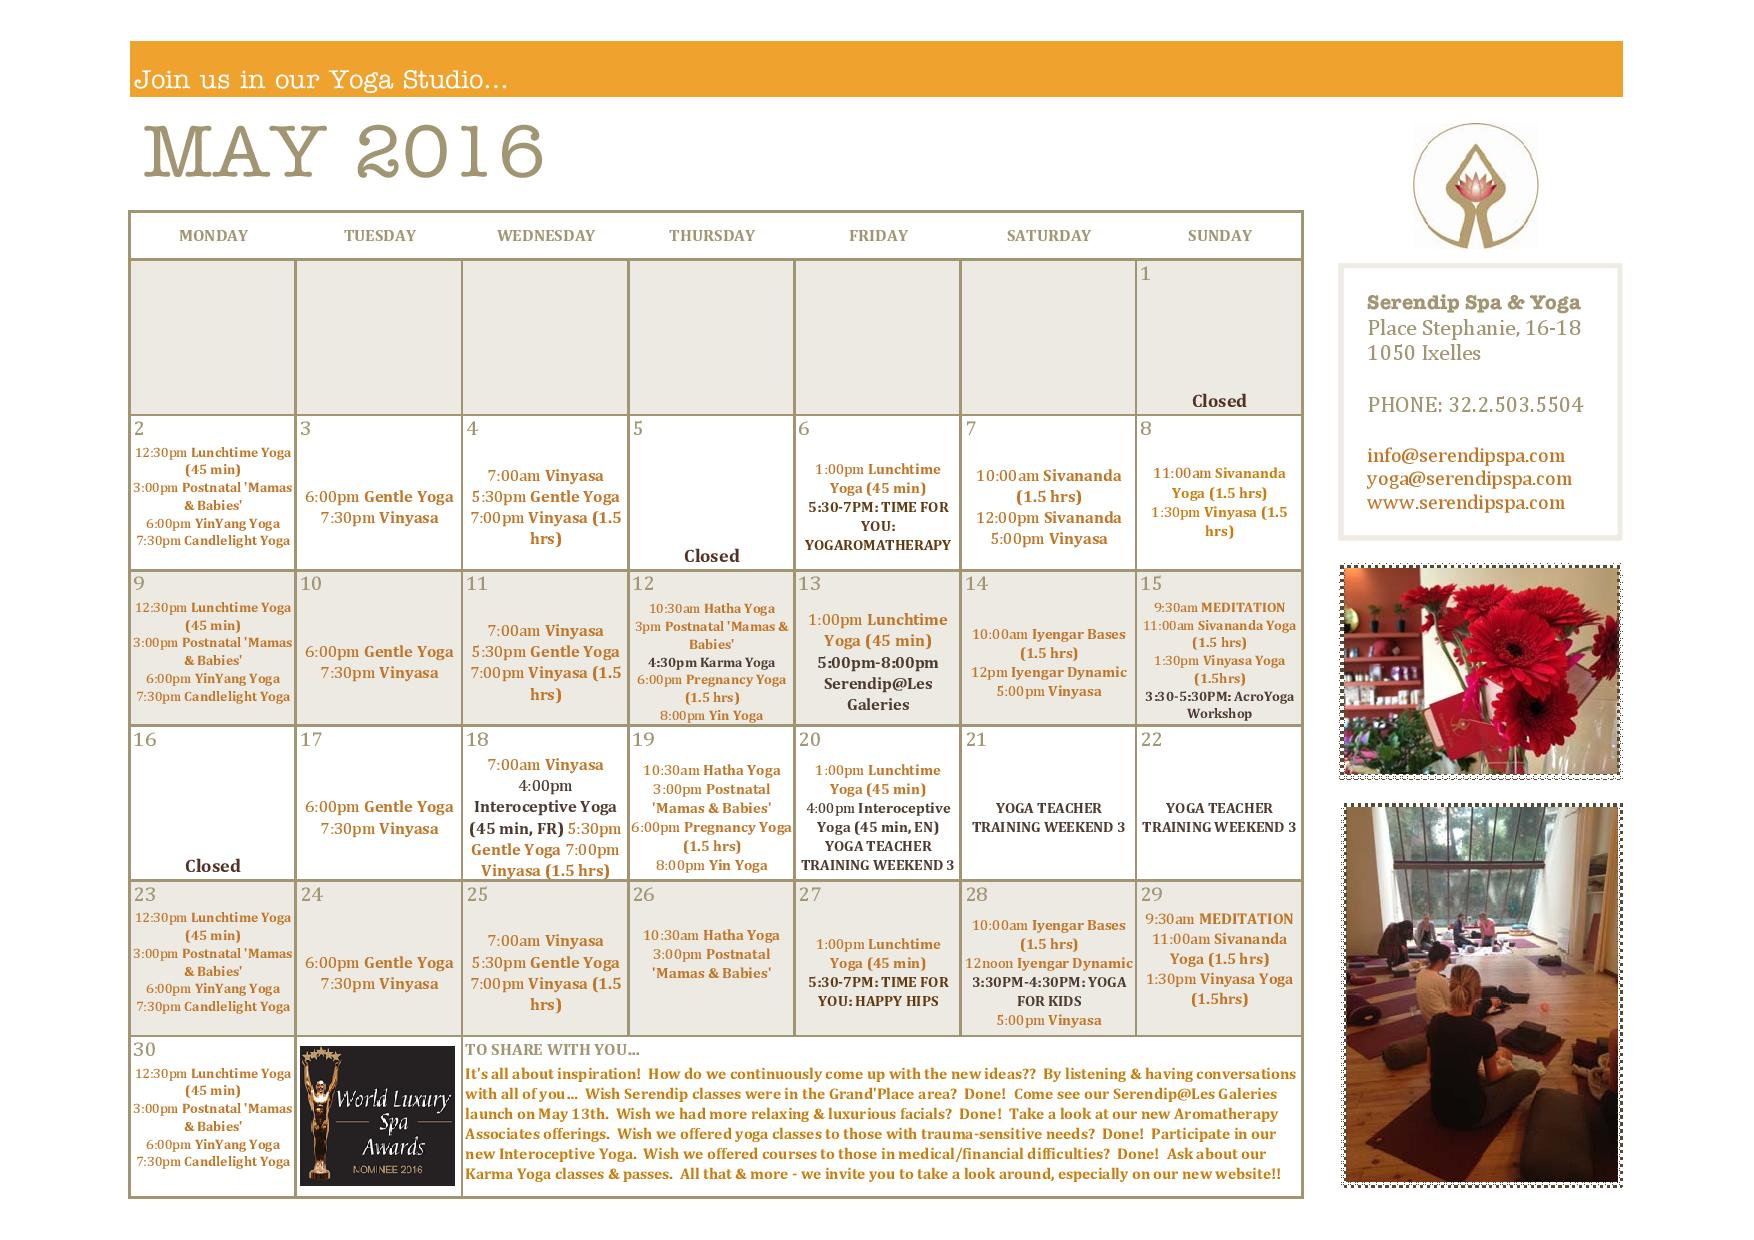 Serendip Spa and Yoga Calendar 2016_May_A4 FRONT-page-001.jpg